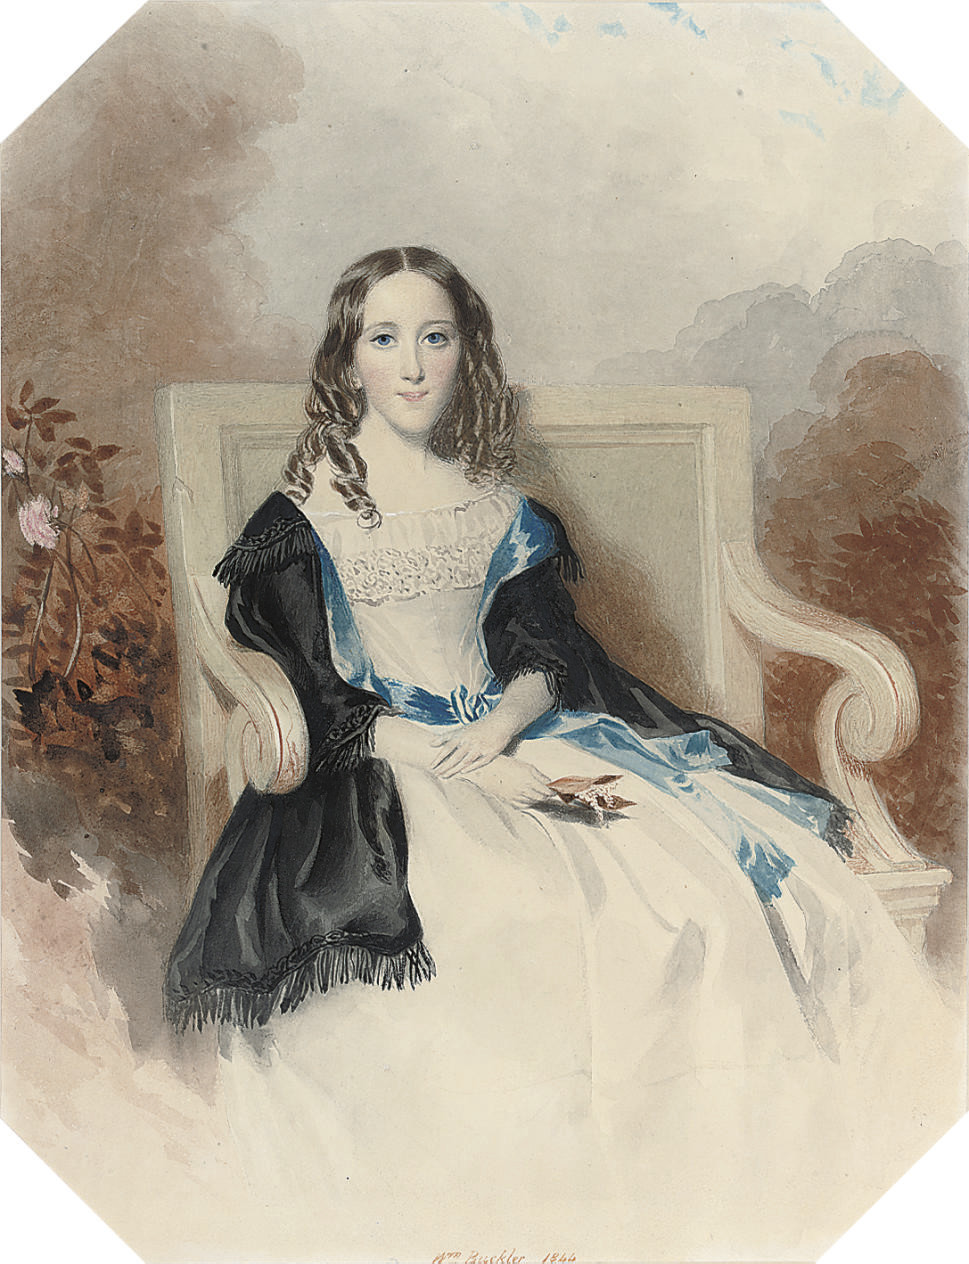 Portrait of a lady, thought to be Horatia Nelson Ward, seated in a garden chair